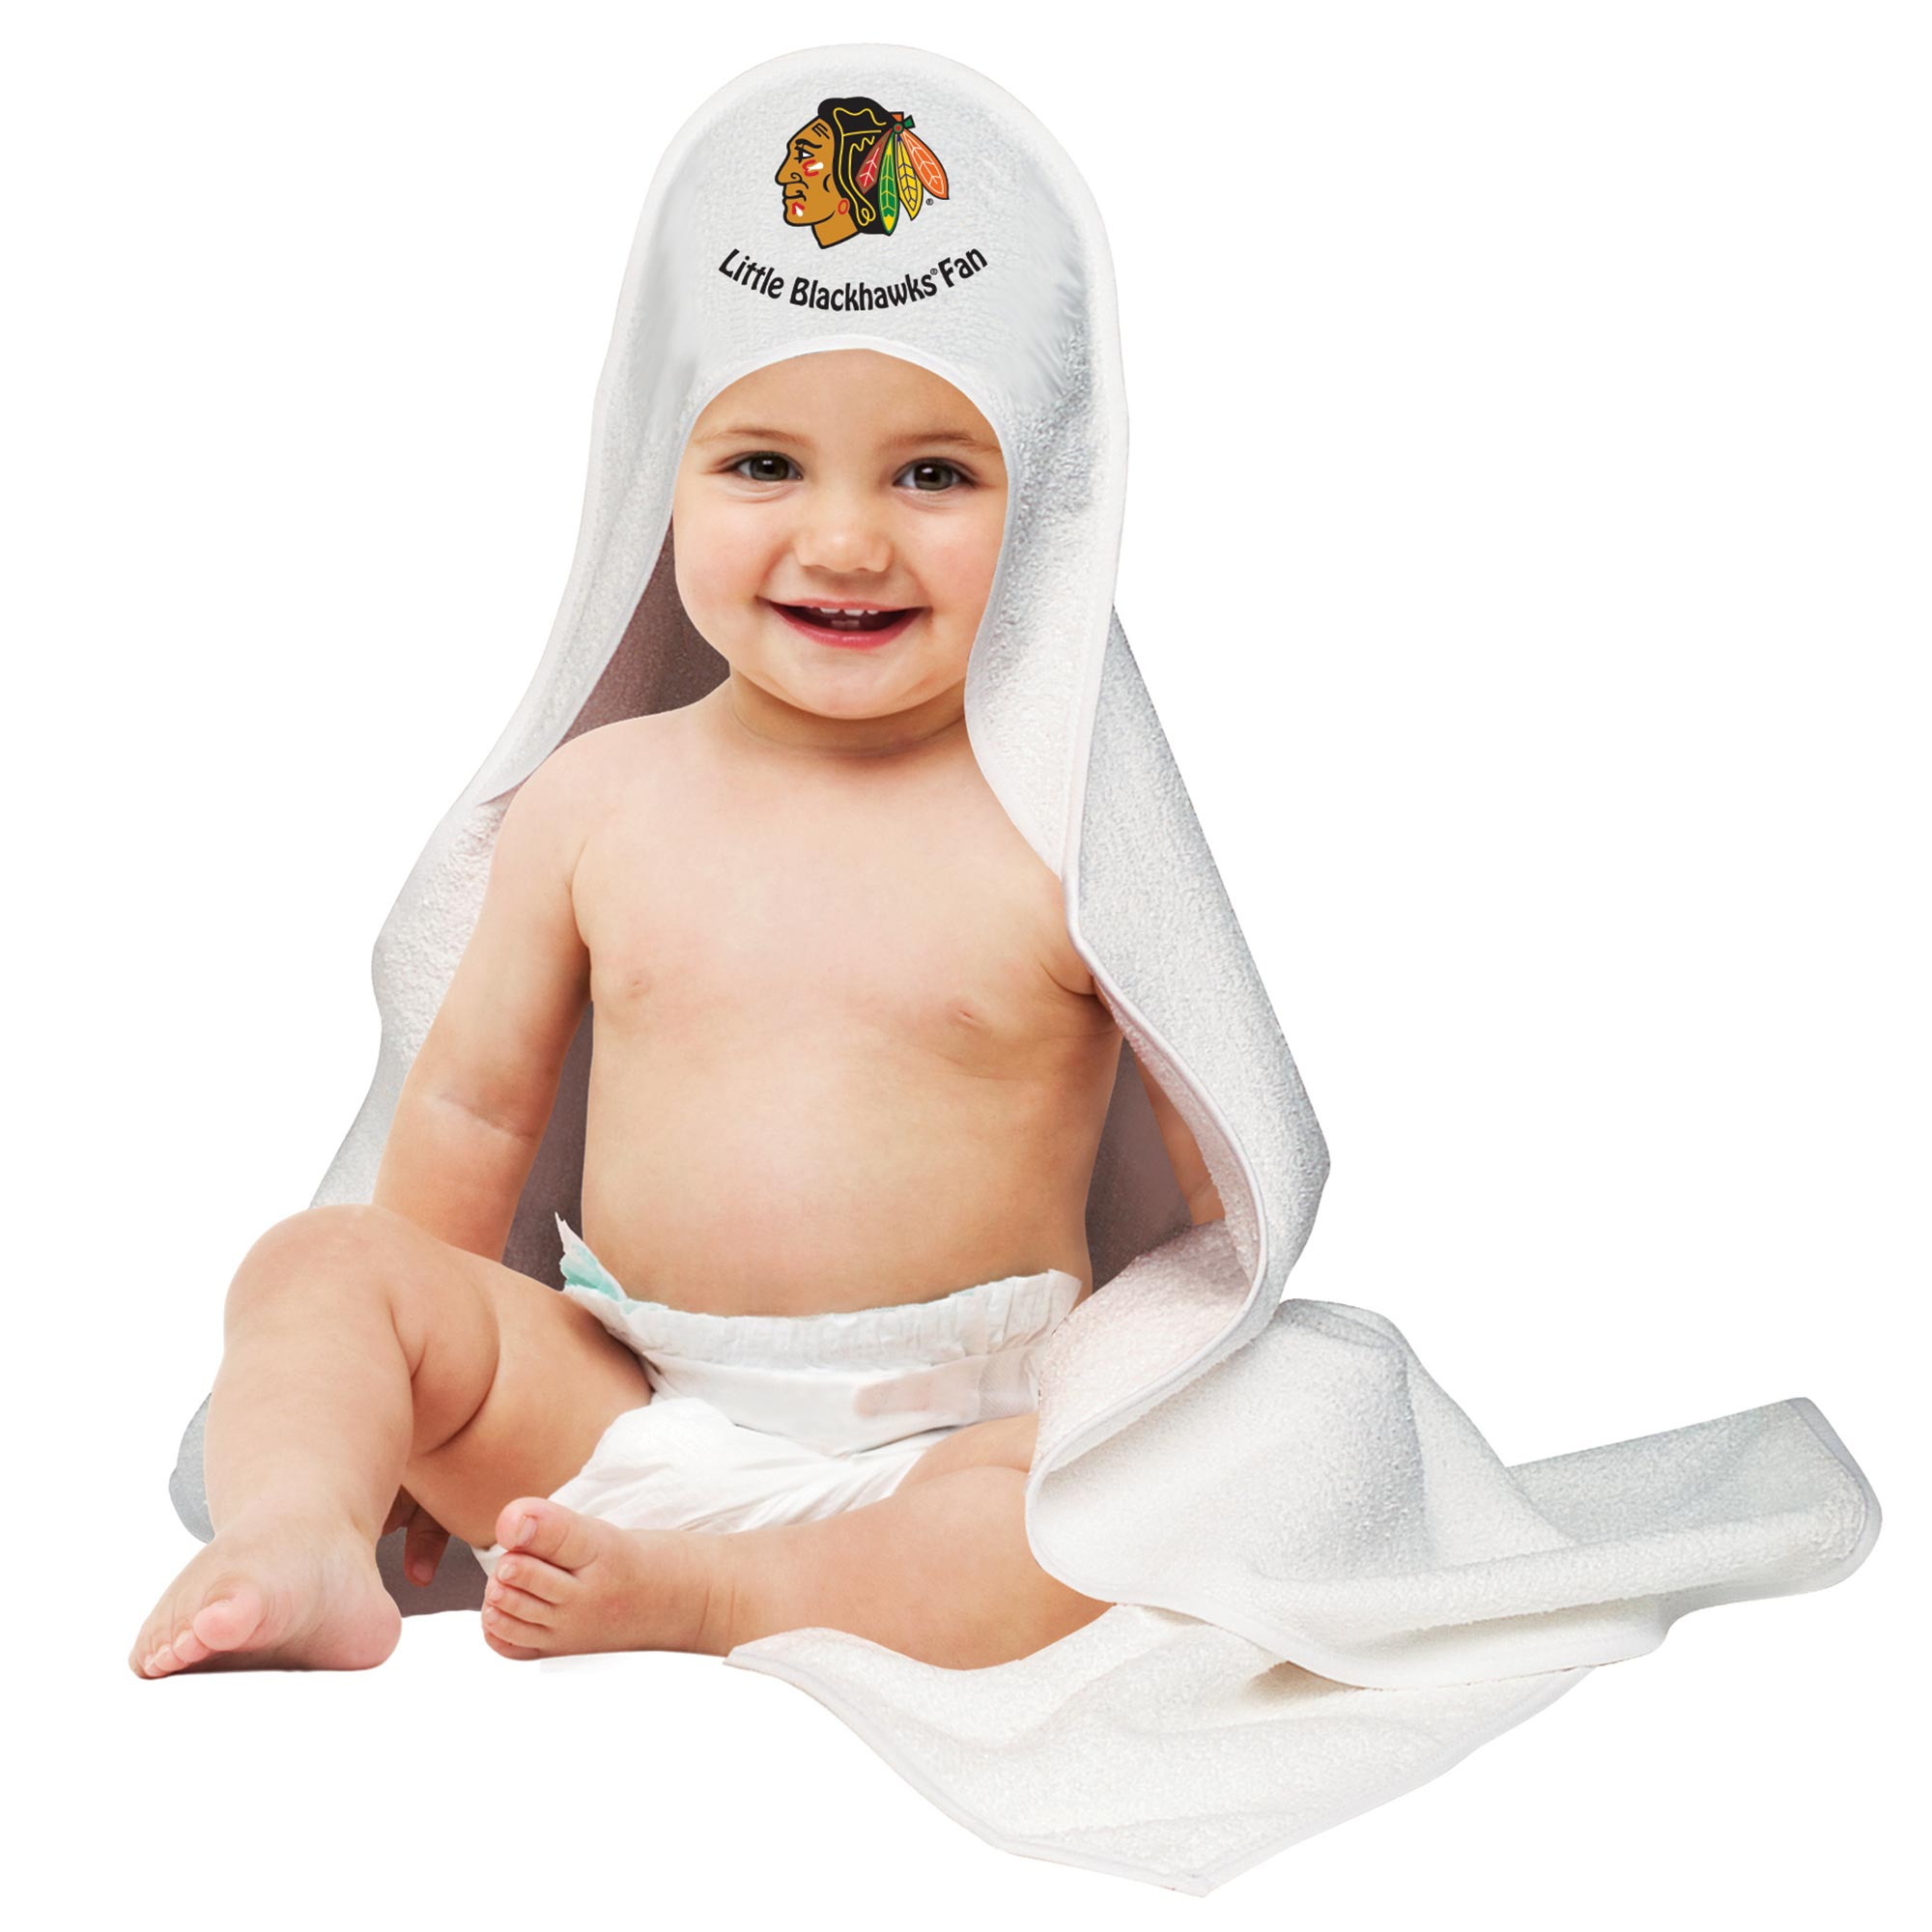 Chicago Blackhawks Hooded Baby Towel